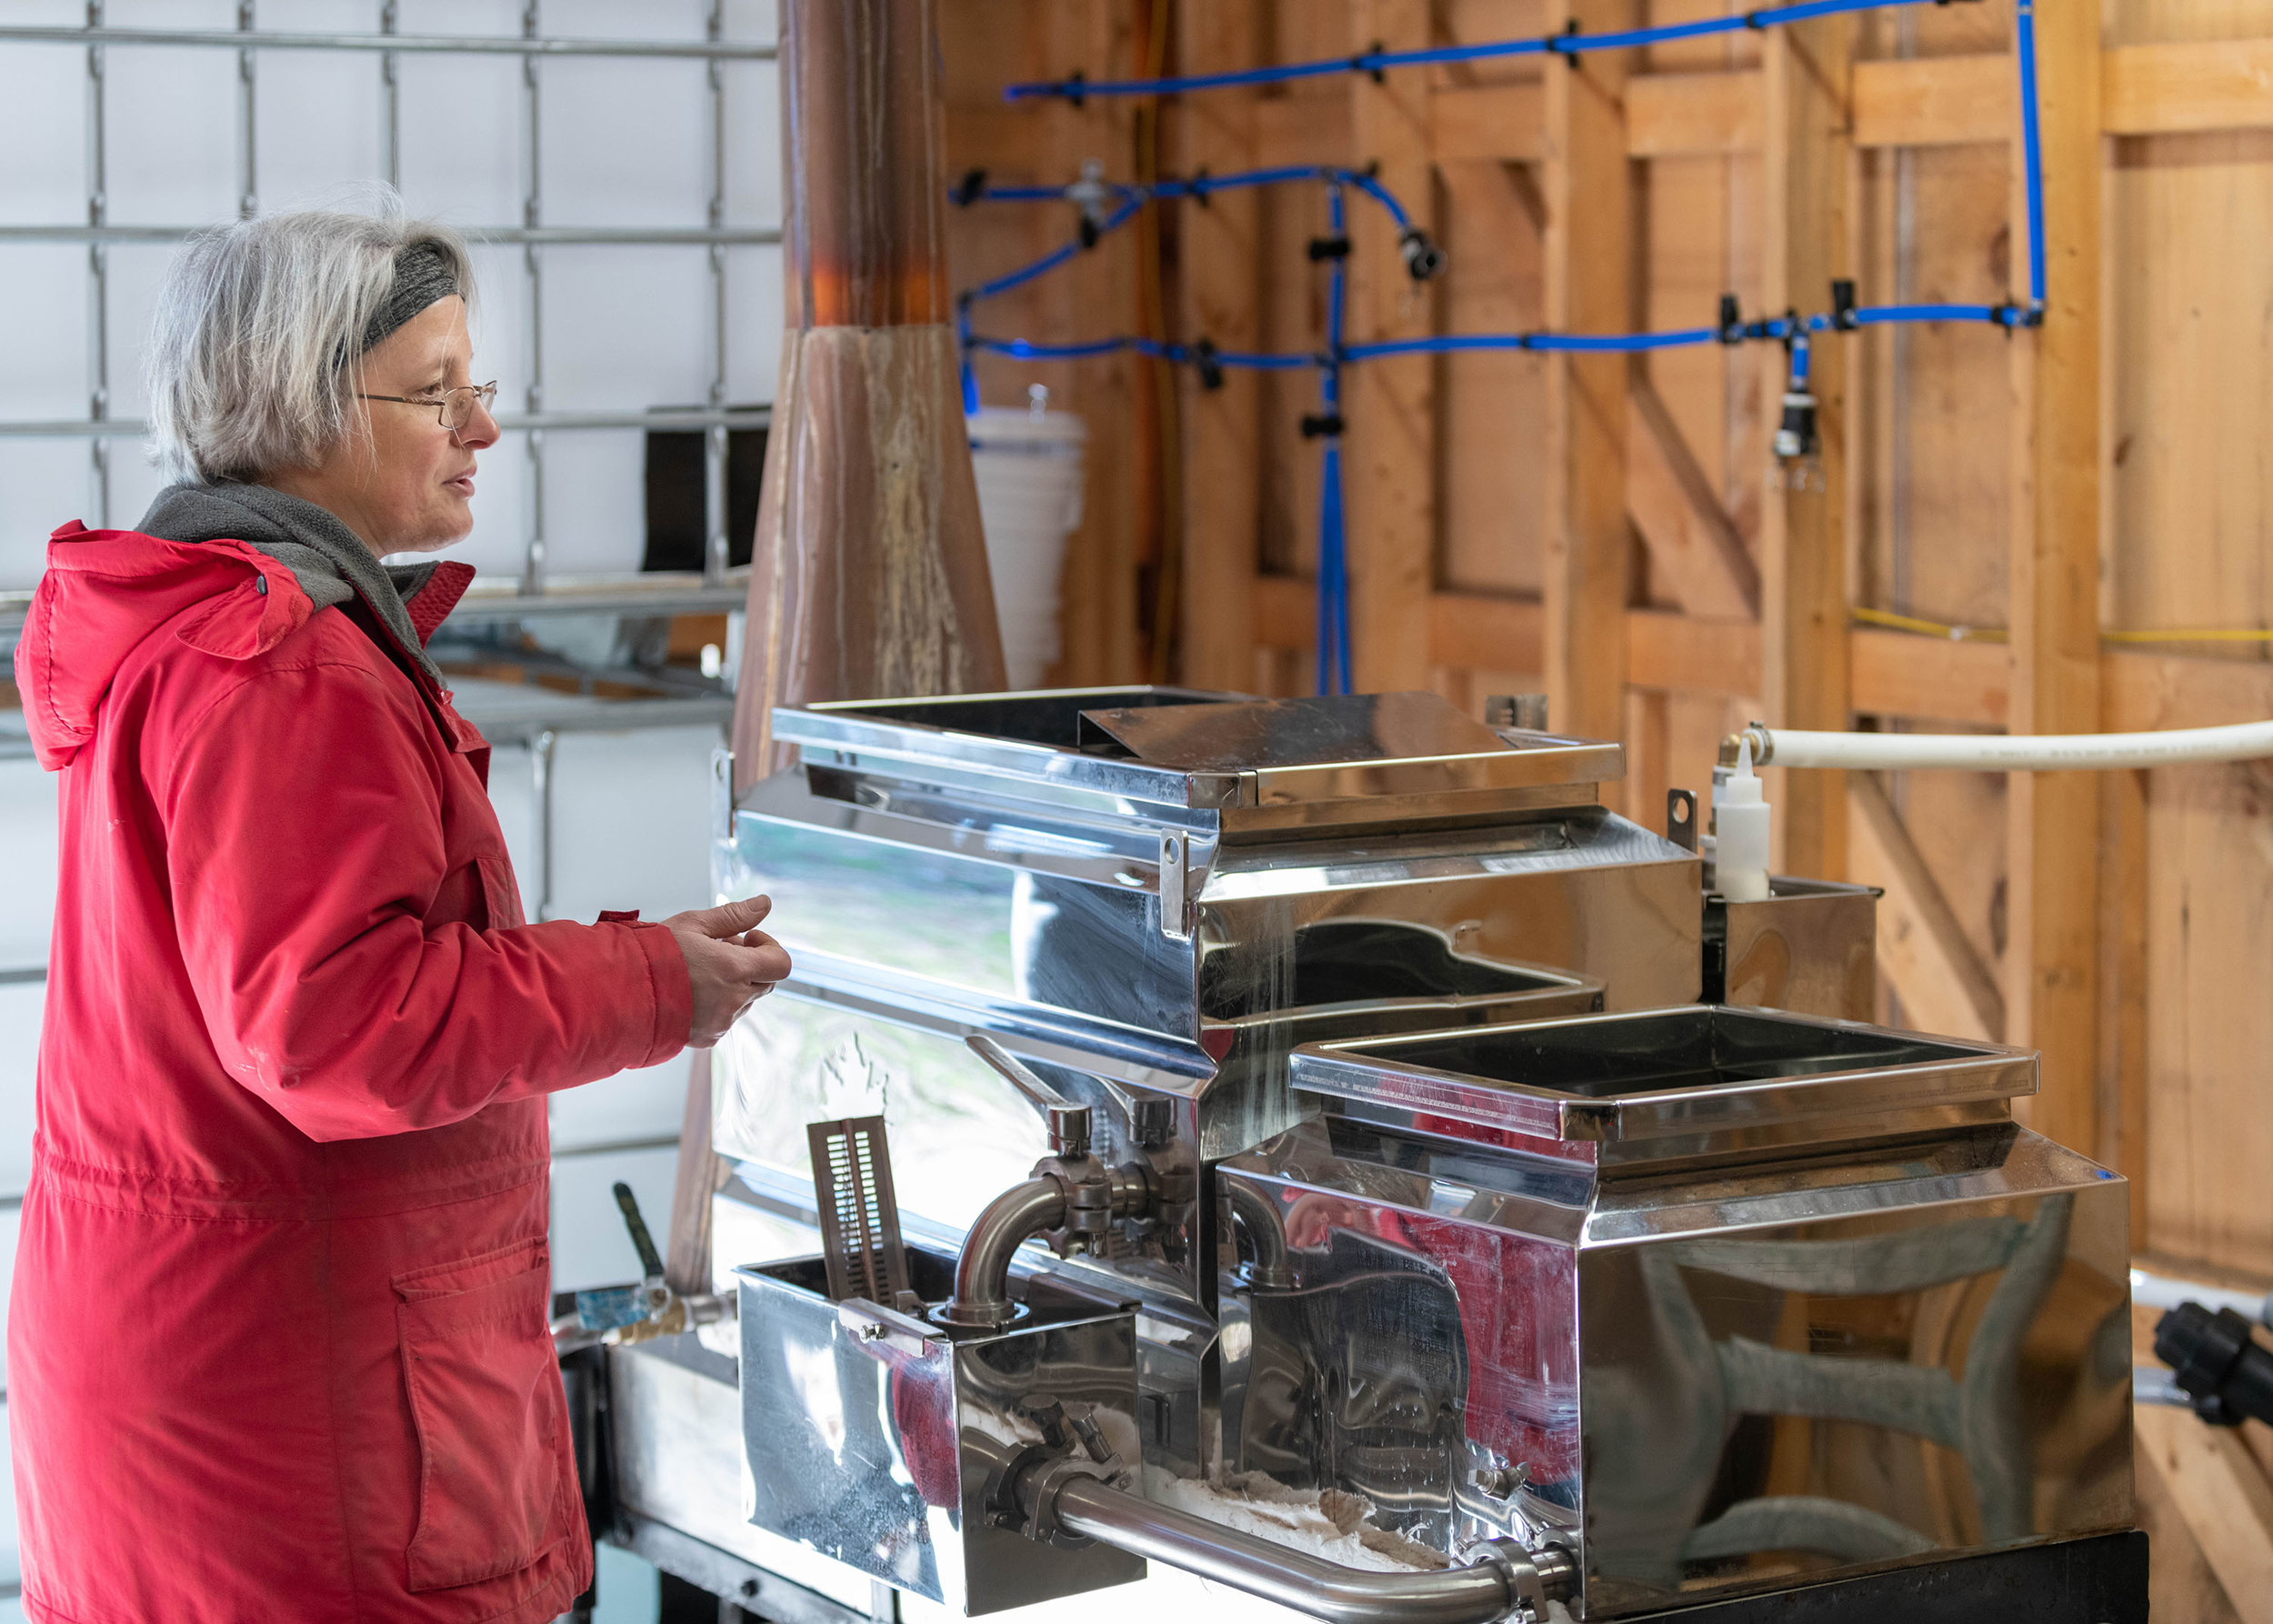 SouthDown Farm's Sheryl Long demonstrates how the sap is turned into syrup using the evaporator.